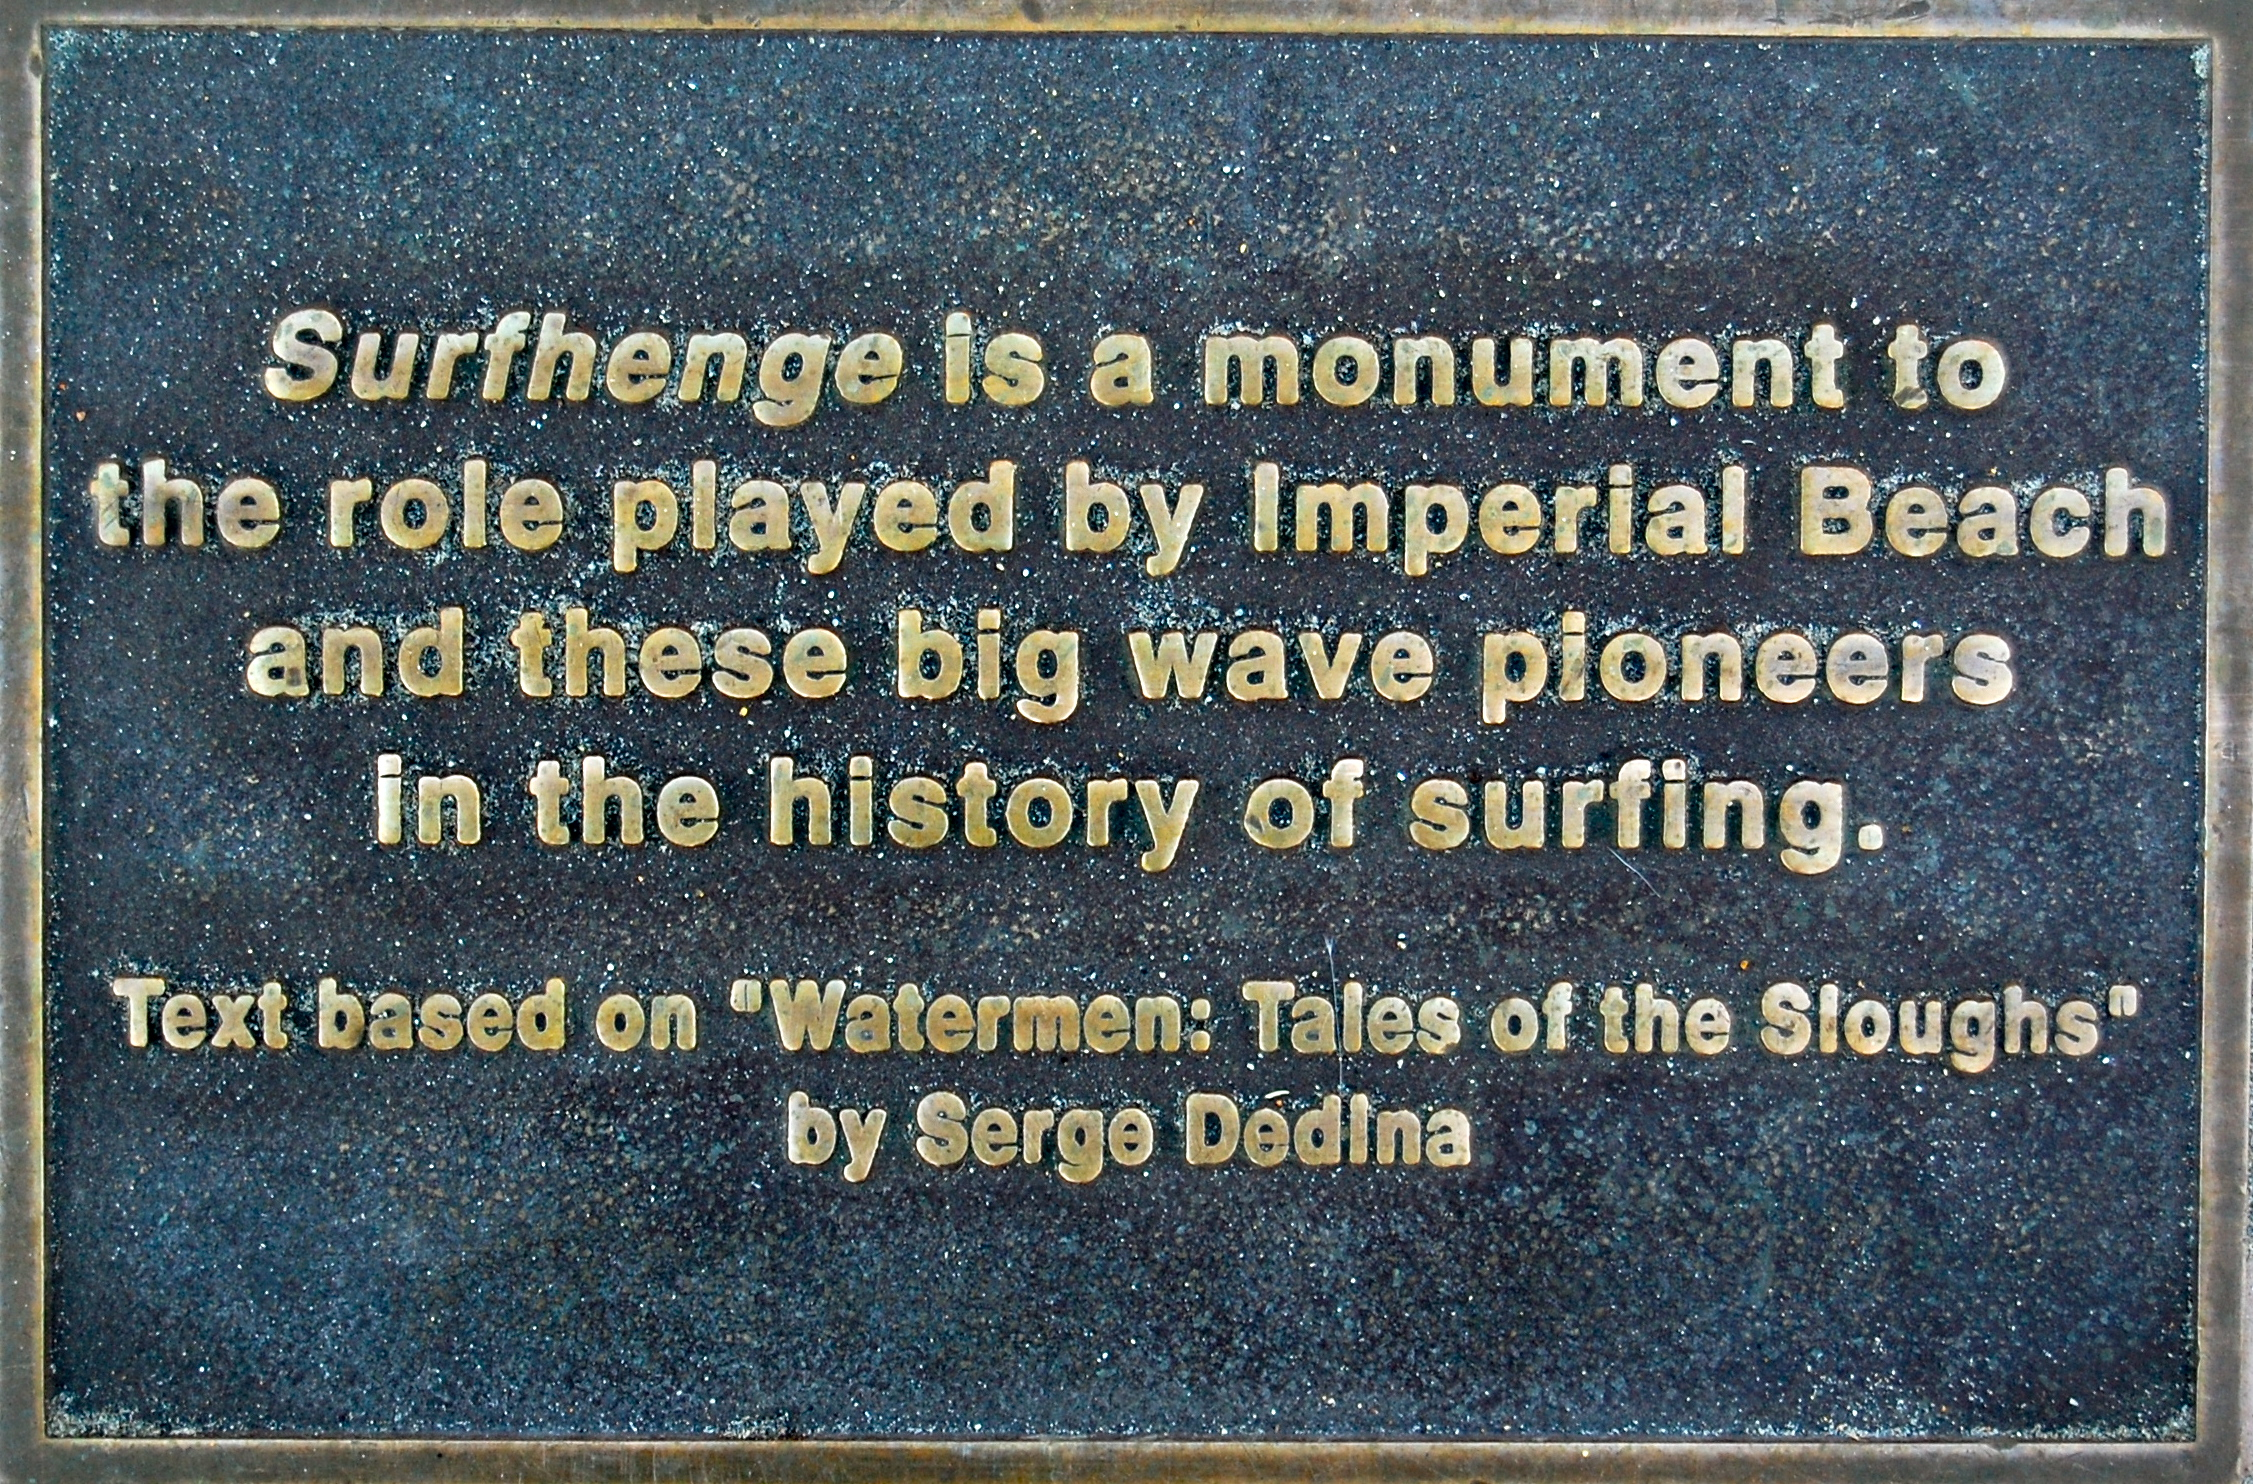 I am very honored to have helped to provided the information that was used in many of the plaques along the pier. The project honors the history of surfing the Tijuana Sloughs reef.